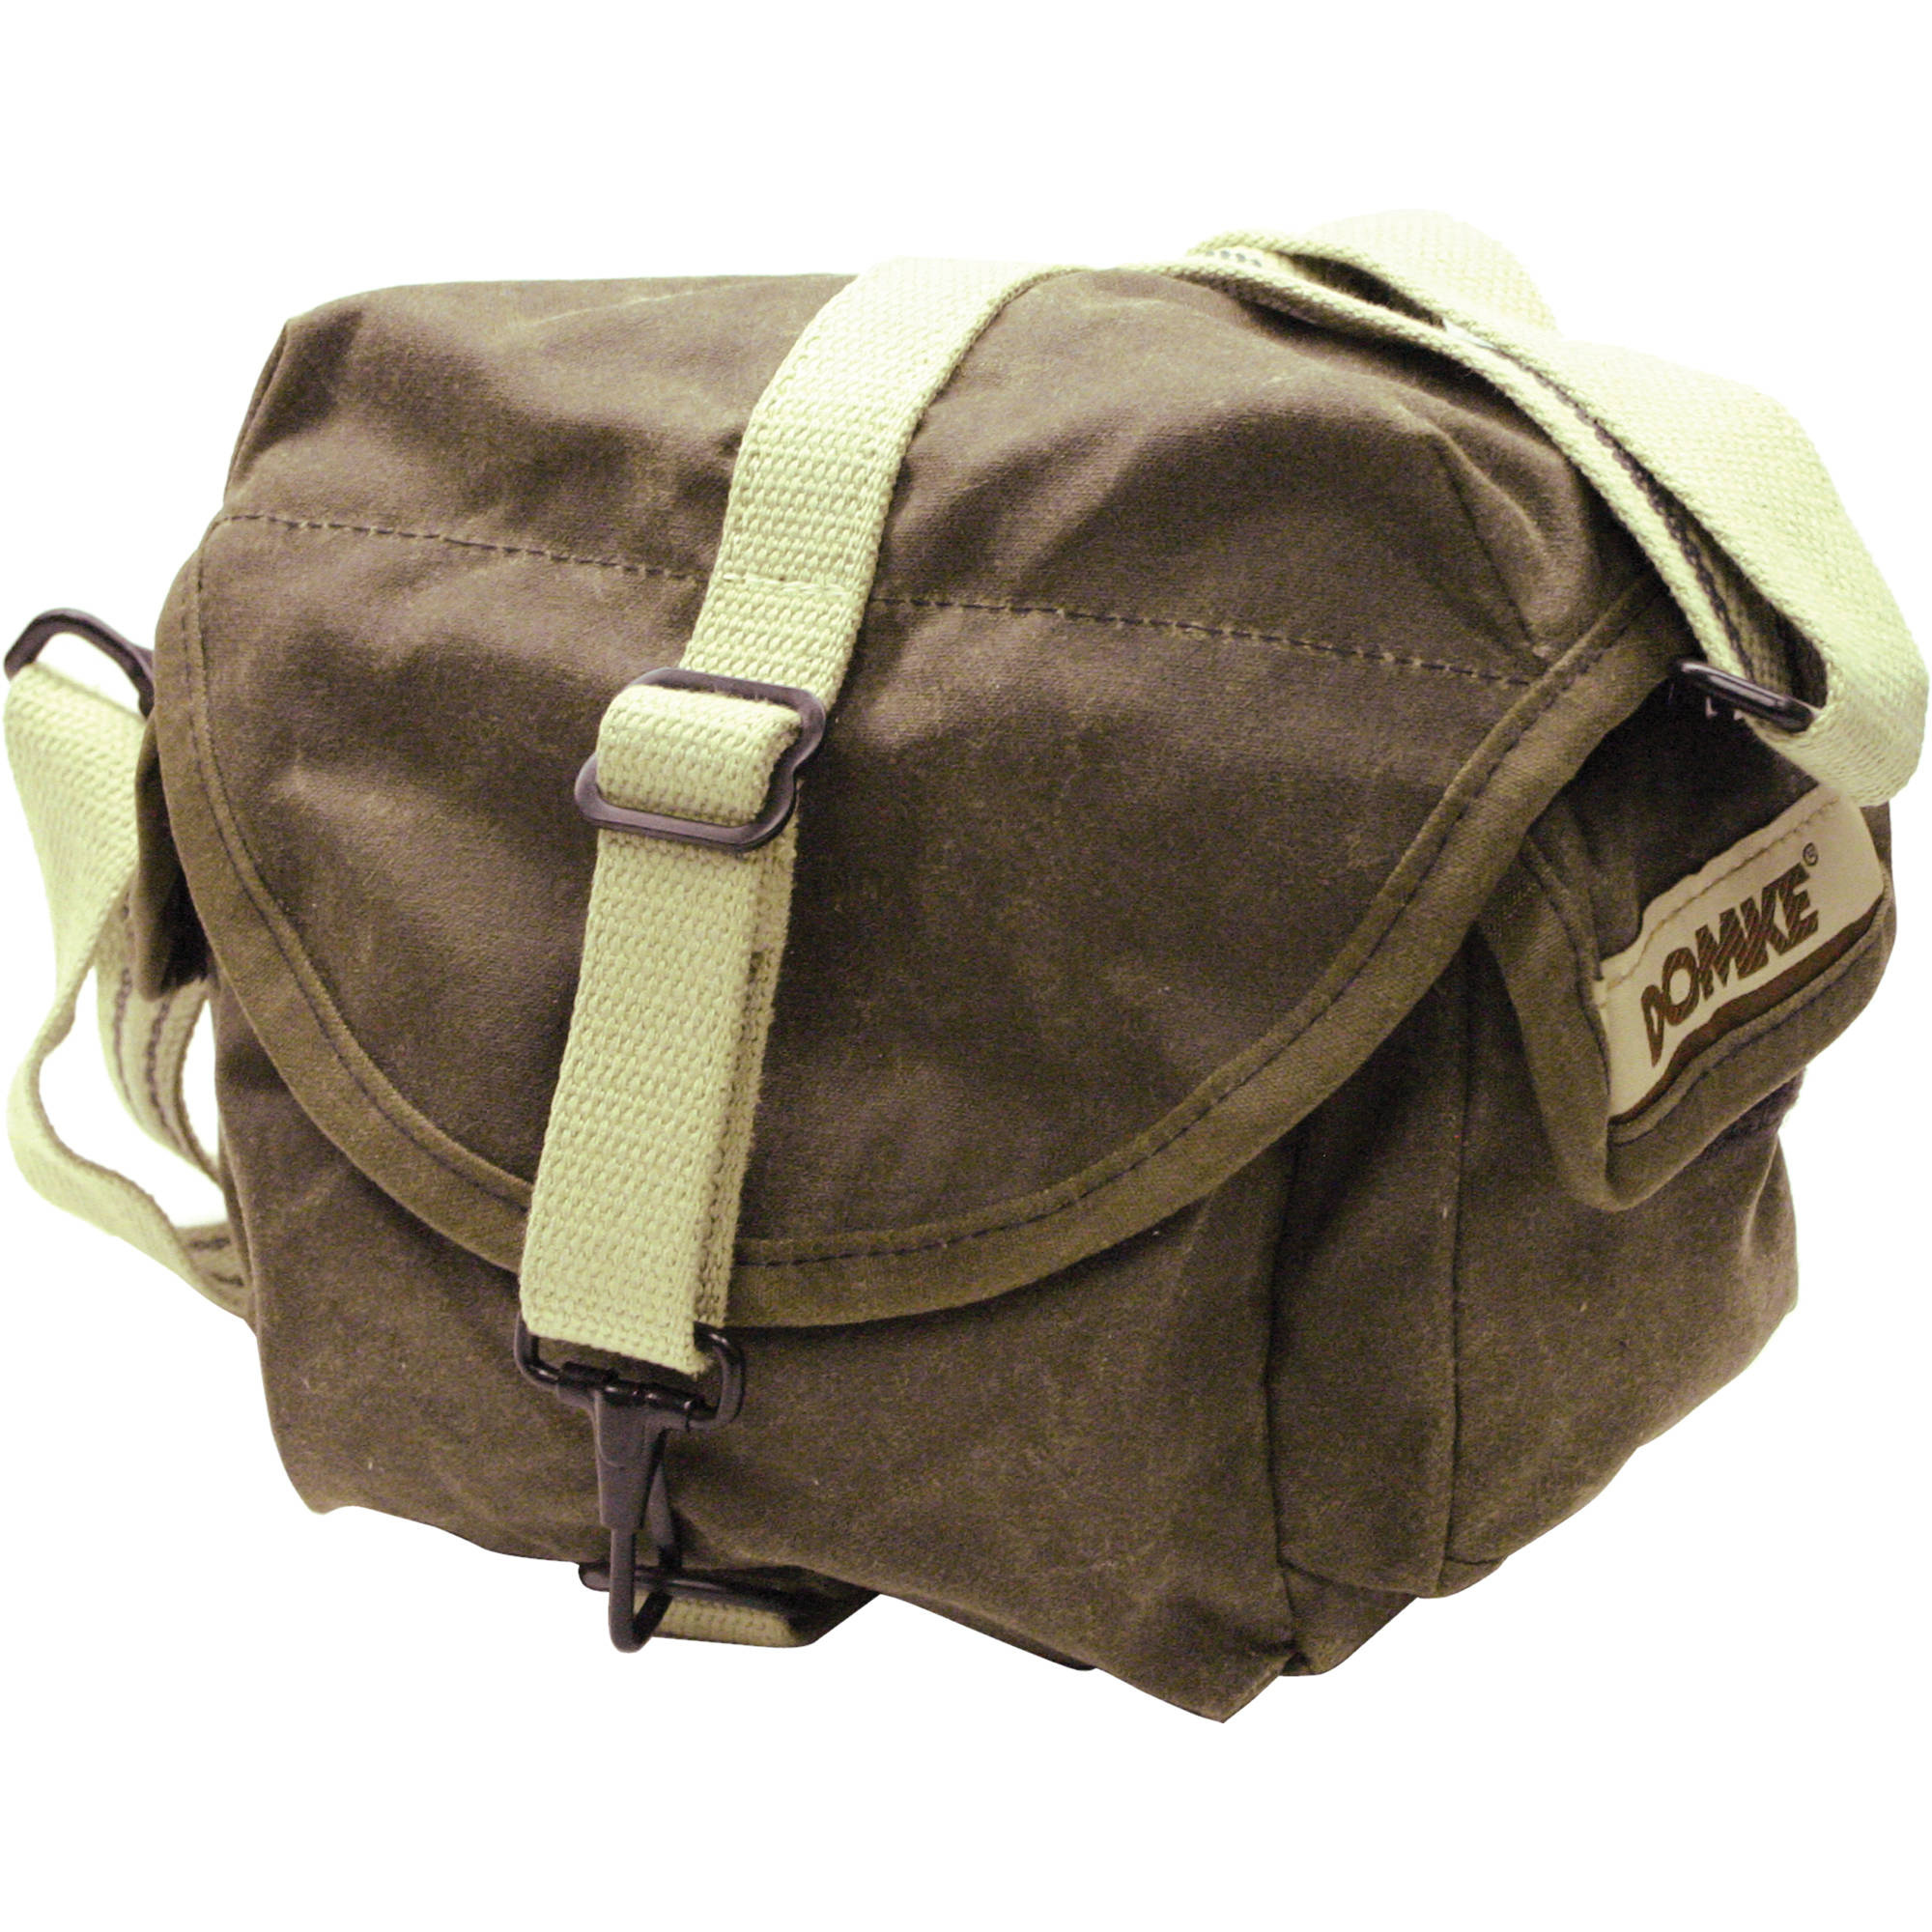 Domke F-8 Small Shoulder Bag- Ruggedwear (Brown)